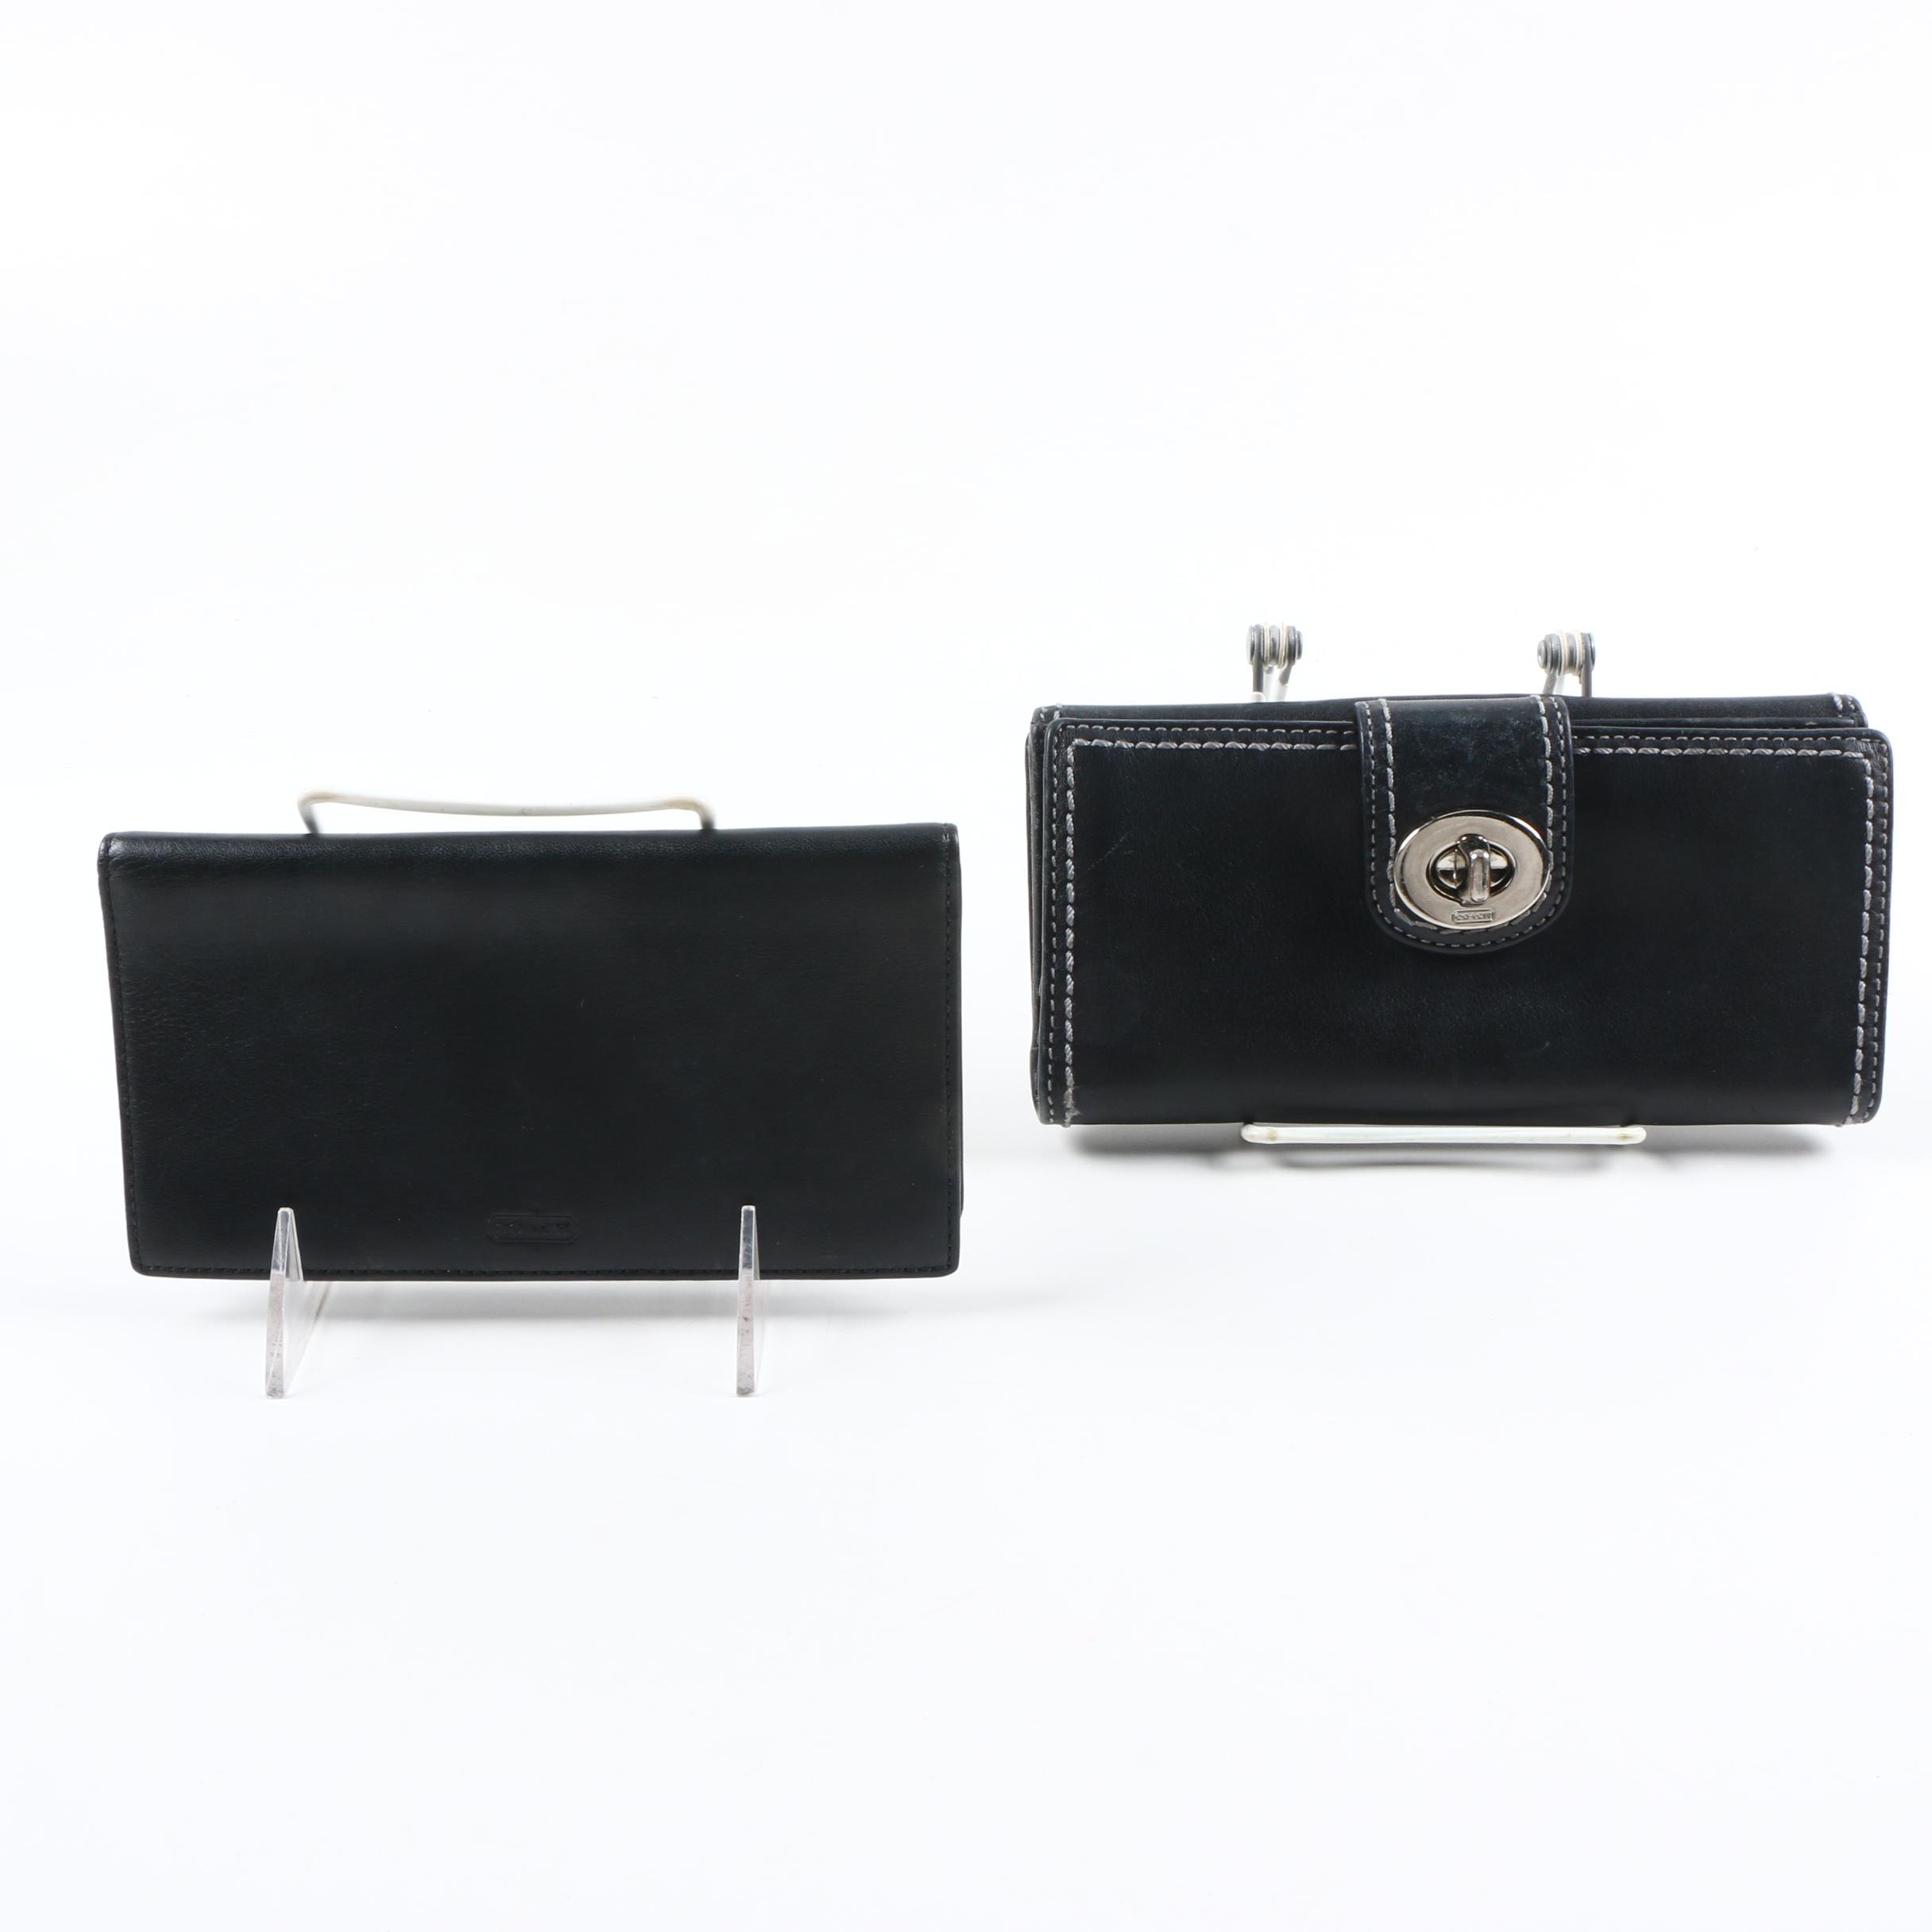 Coach Black Leather Wallets